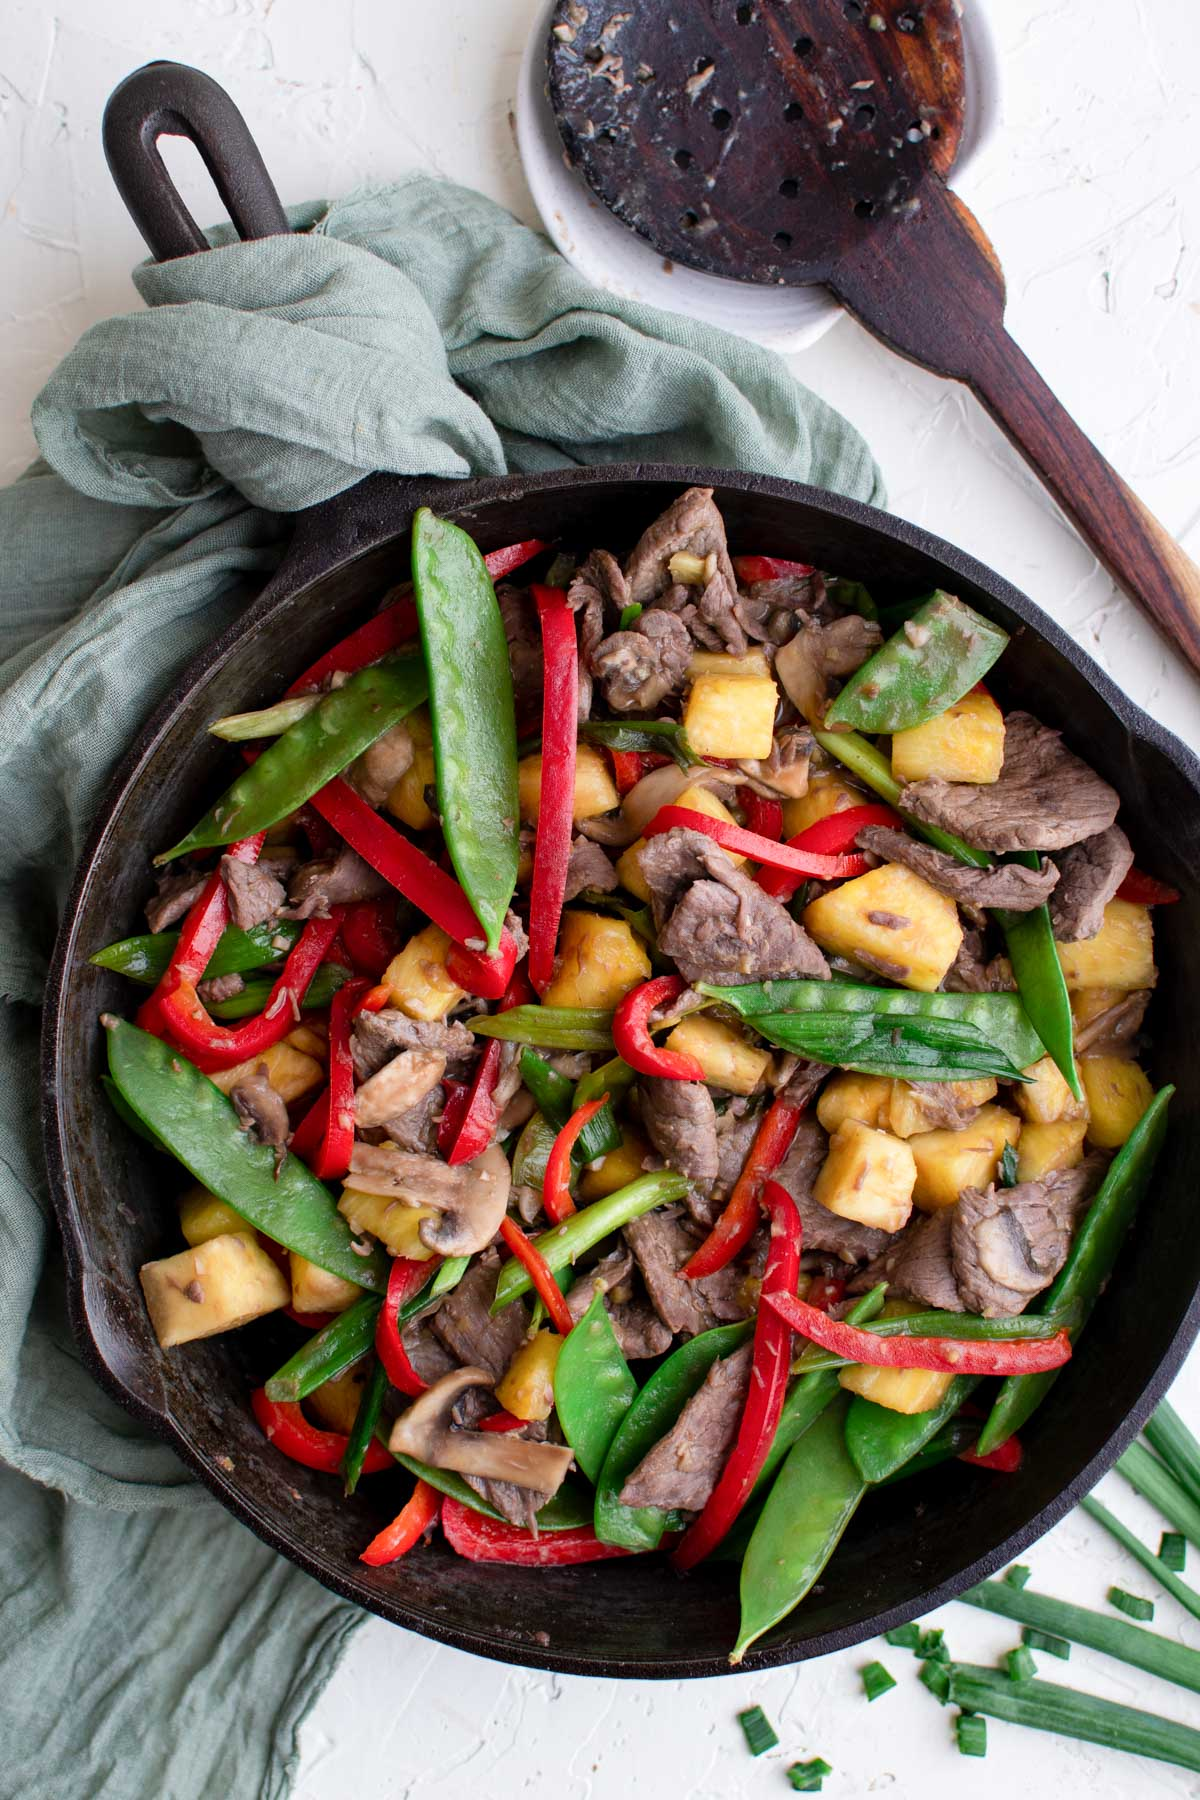 black skillet, green napkin, wood spoon, vegetables and beef in a skillet